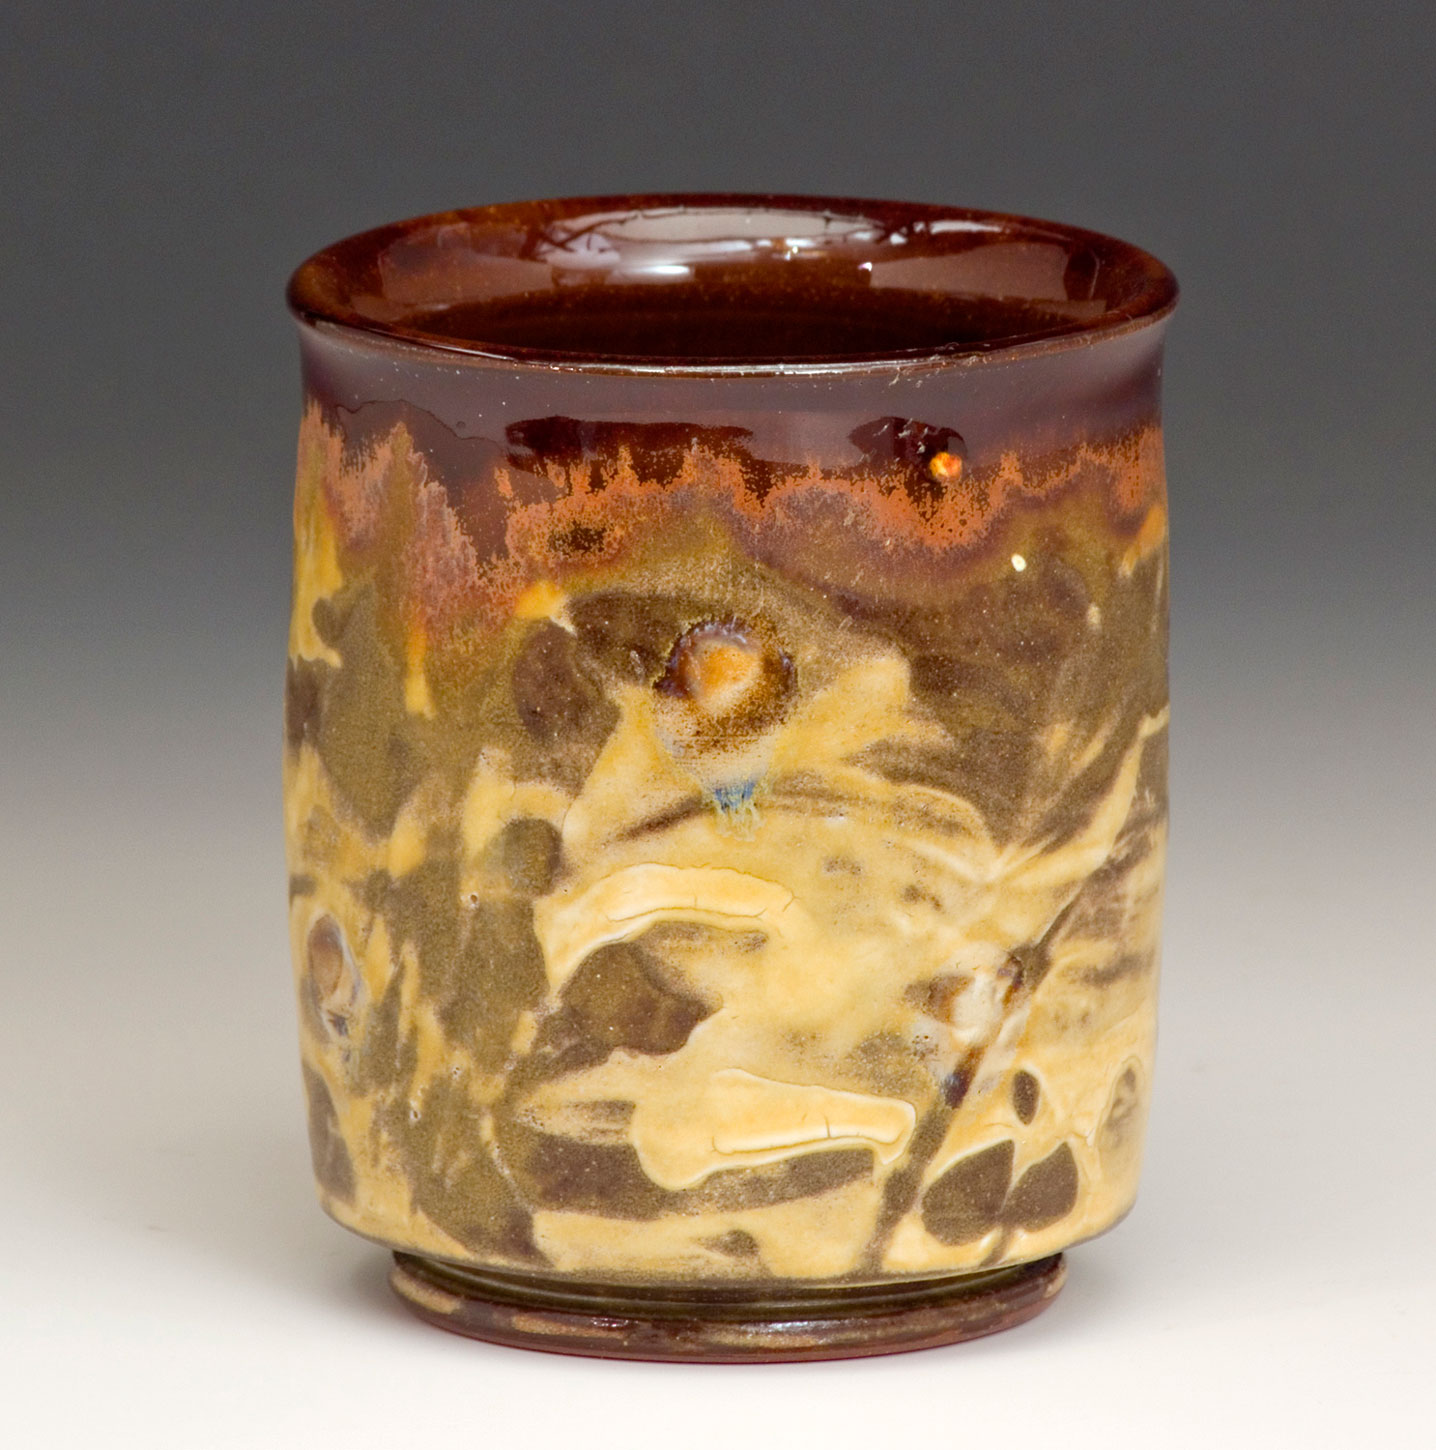 Ceramic-Art-Pottery-Cup-Bruce-Gholson.jpg